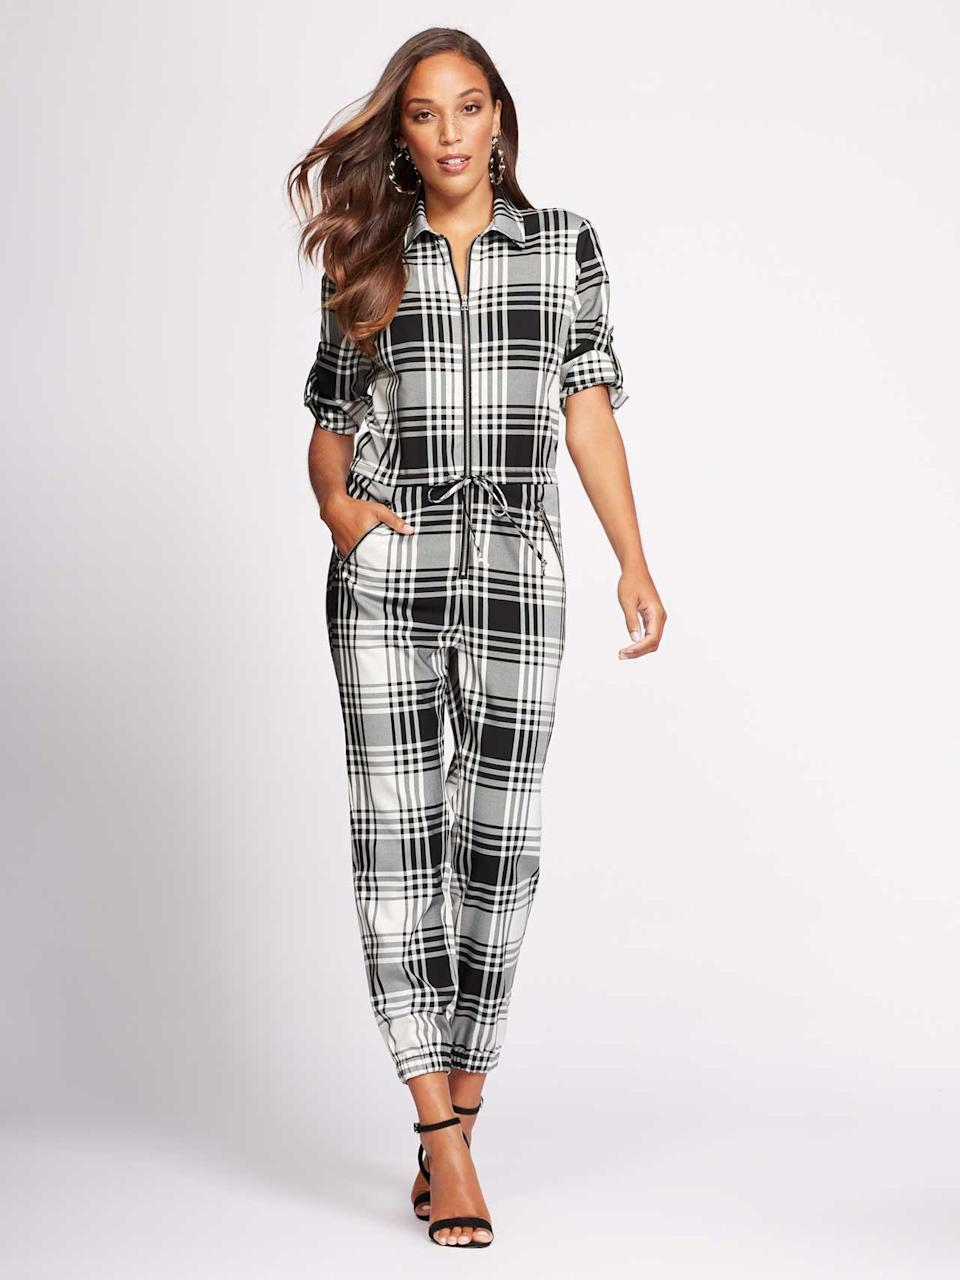 Plaid utilitarian jumpsuit. (Photo: Courtesy of New York & Company)